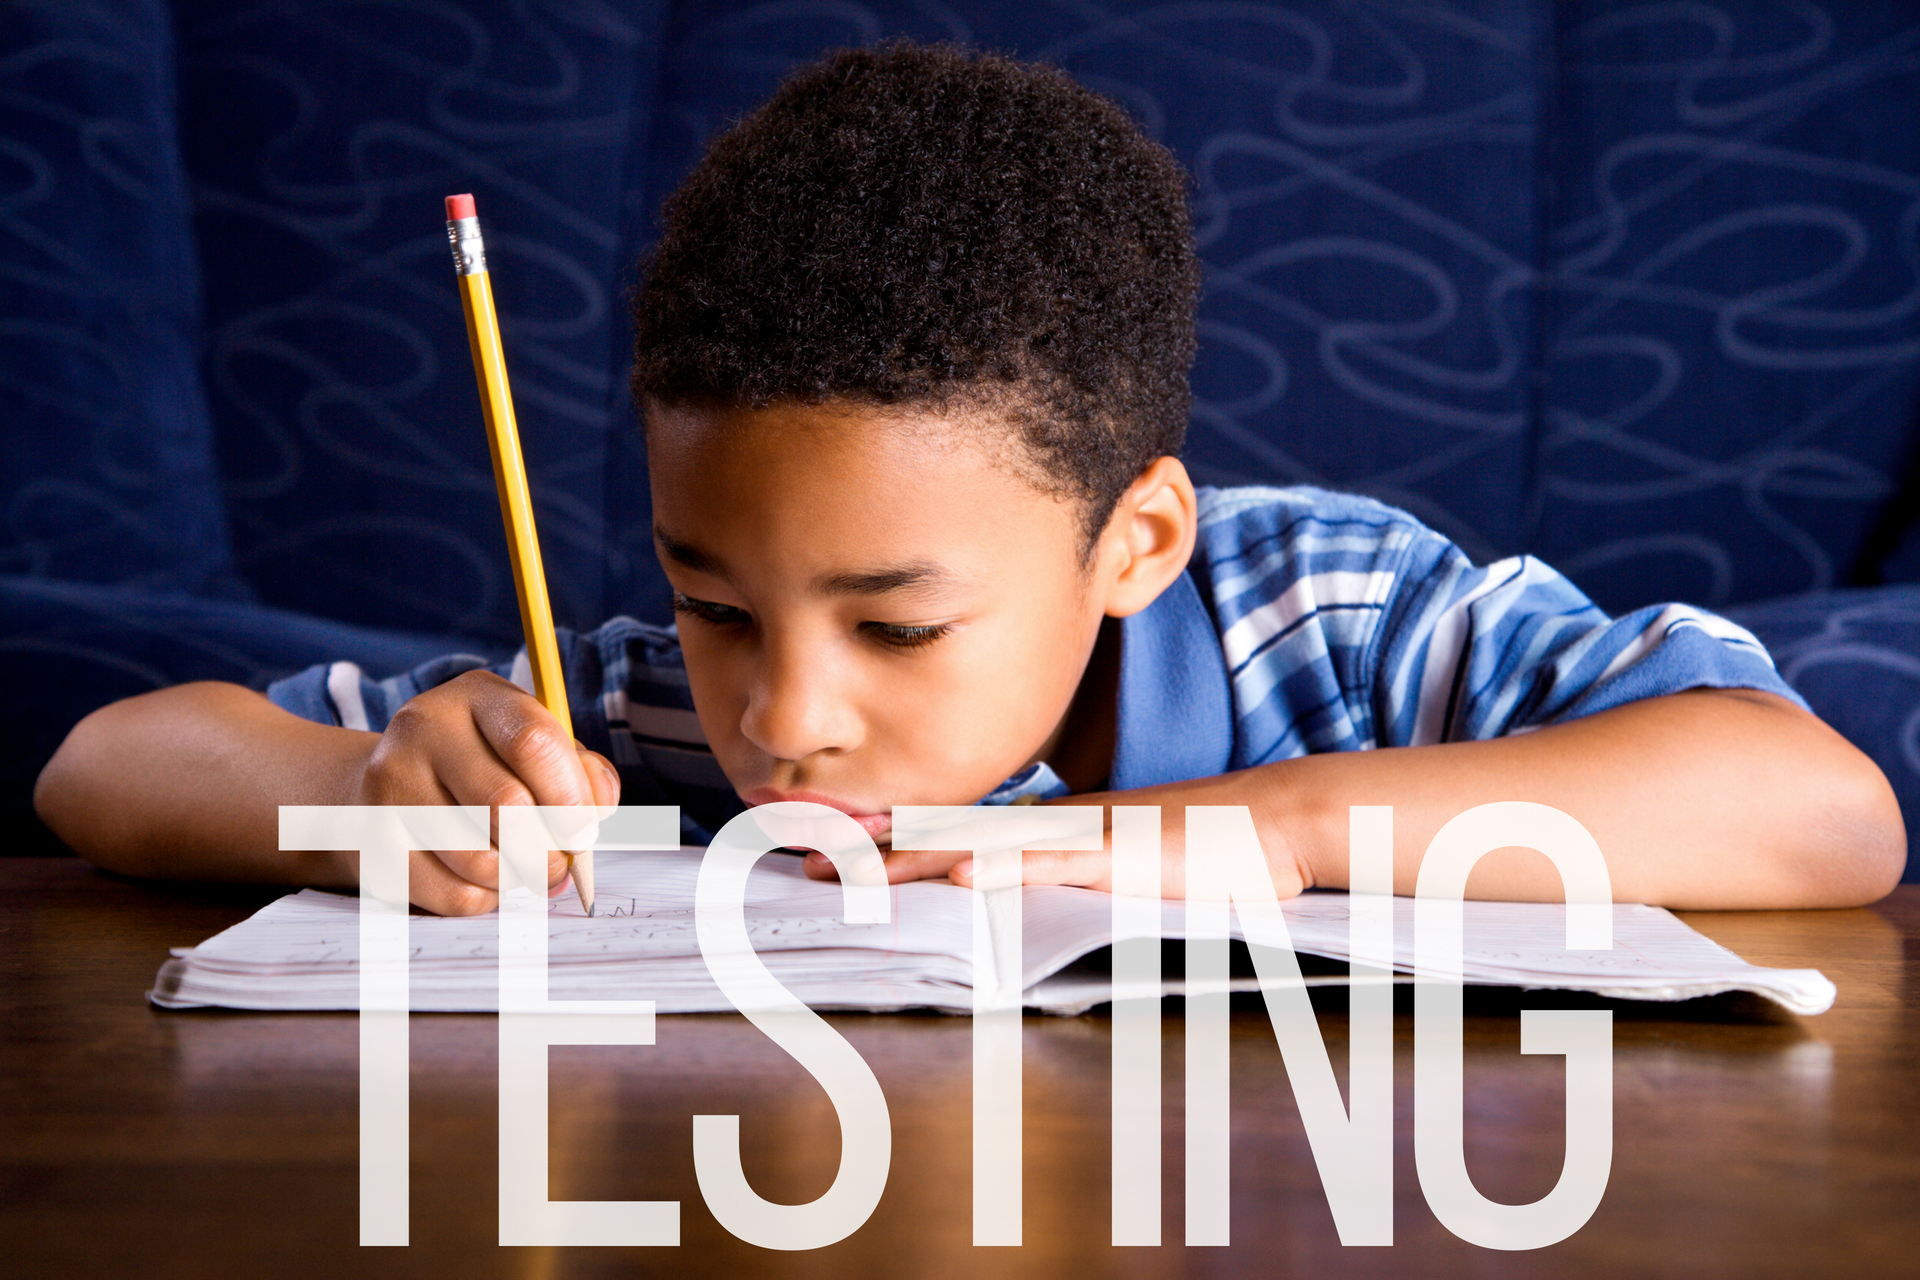 A photo of a young African American boy taking a test.